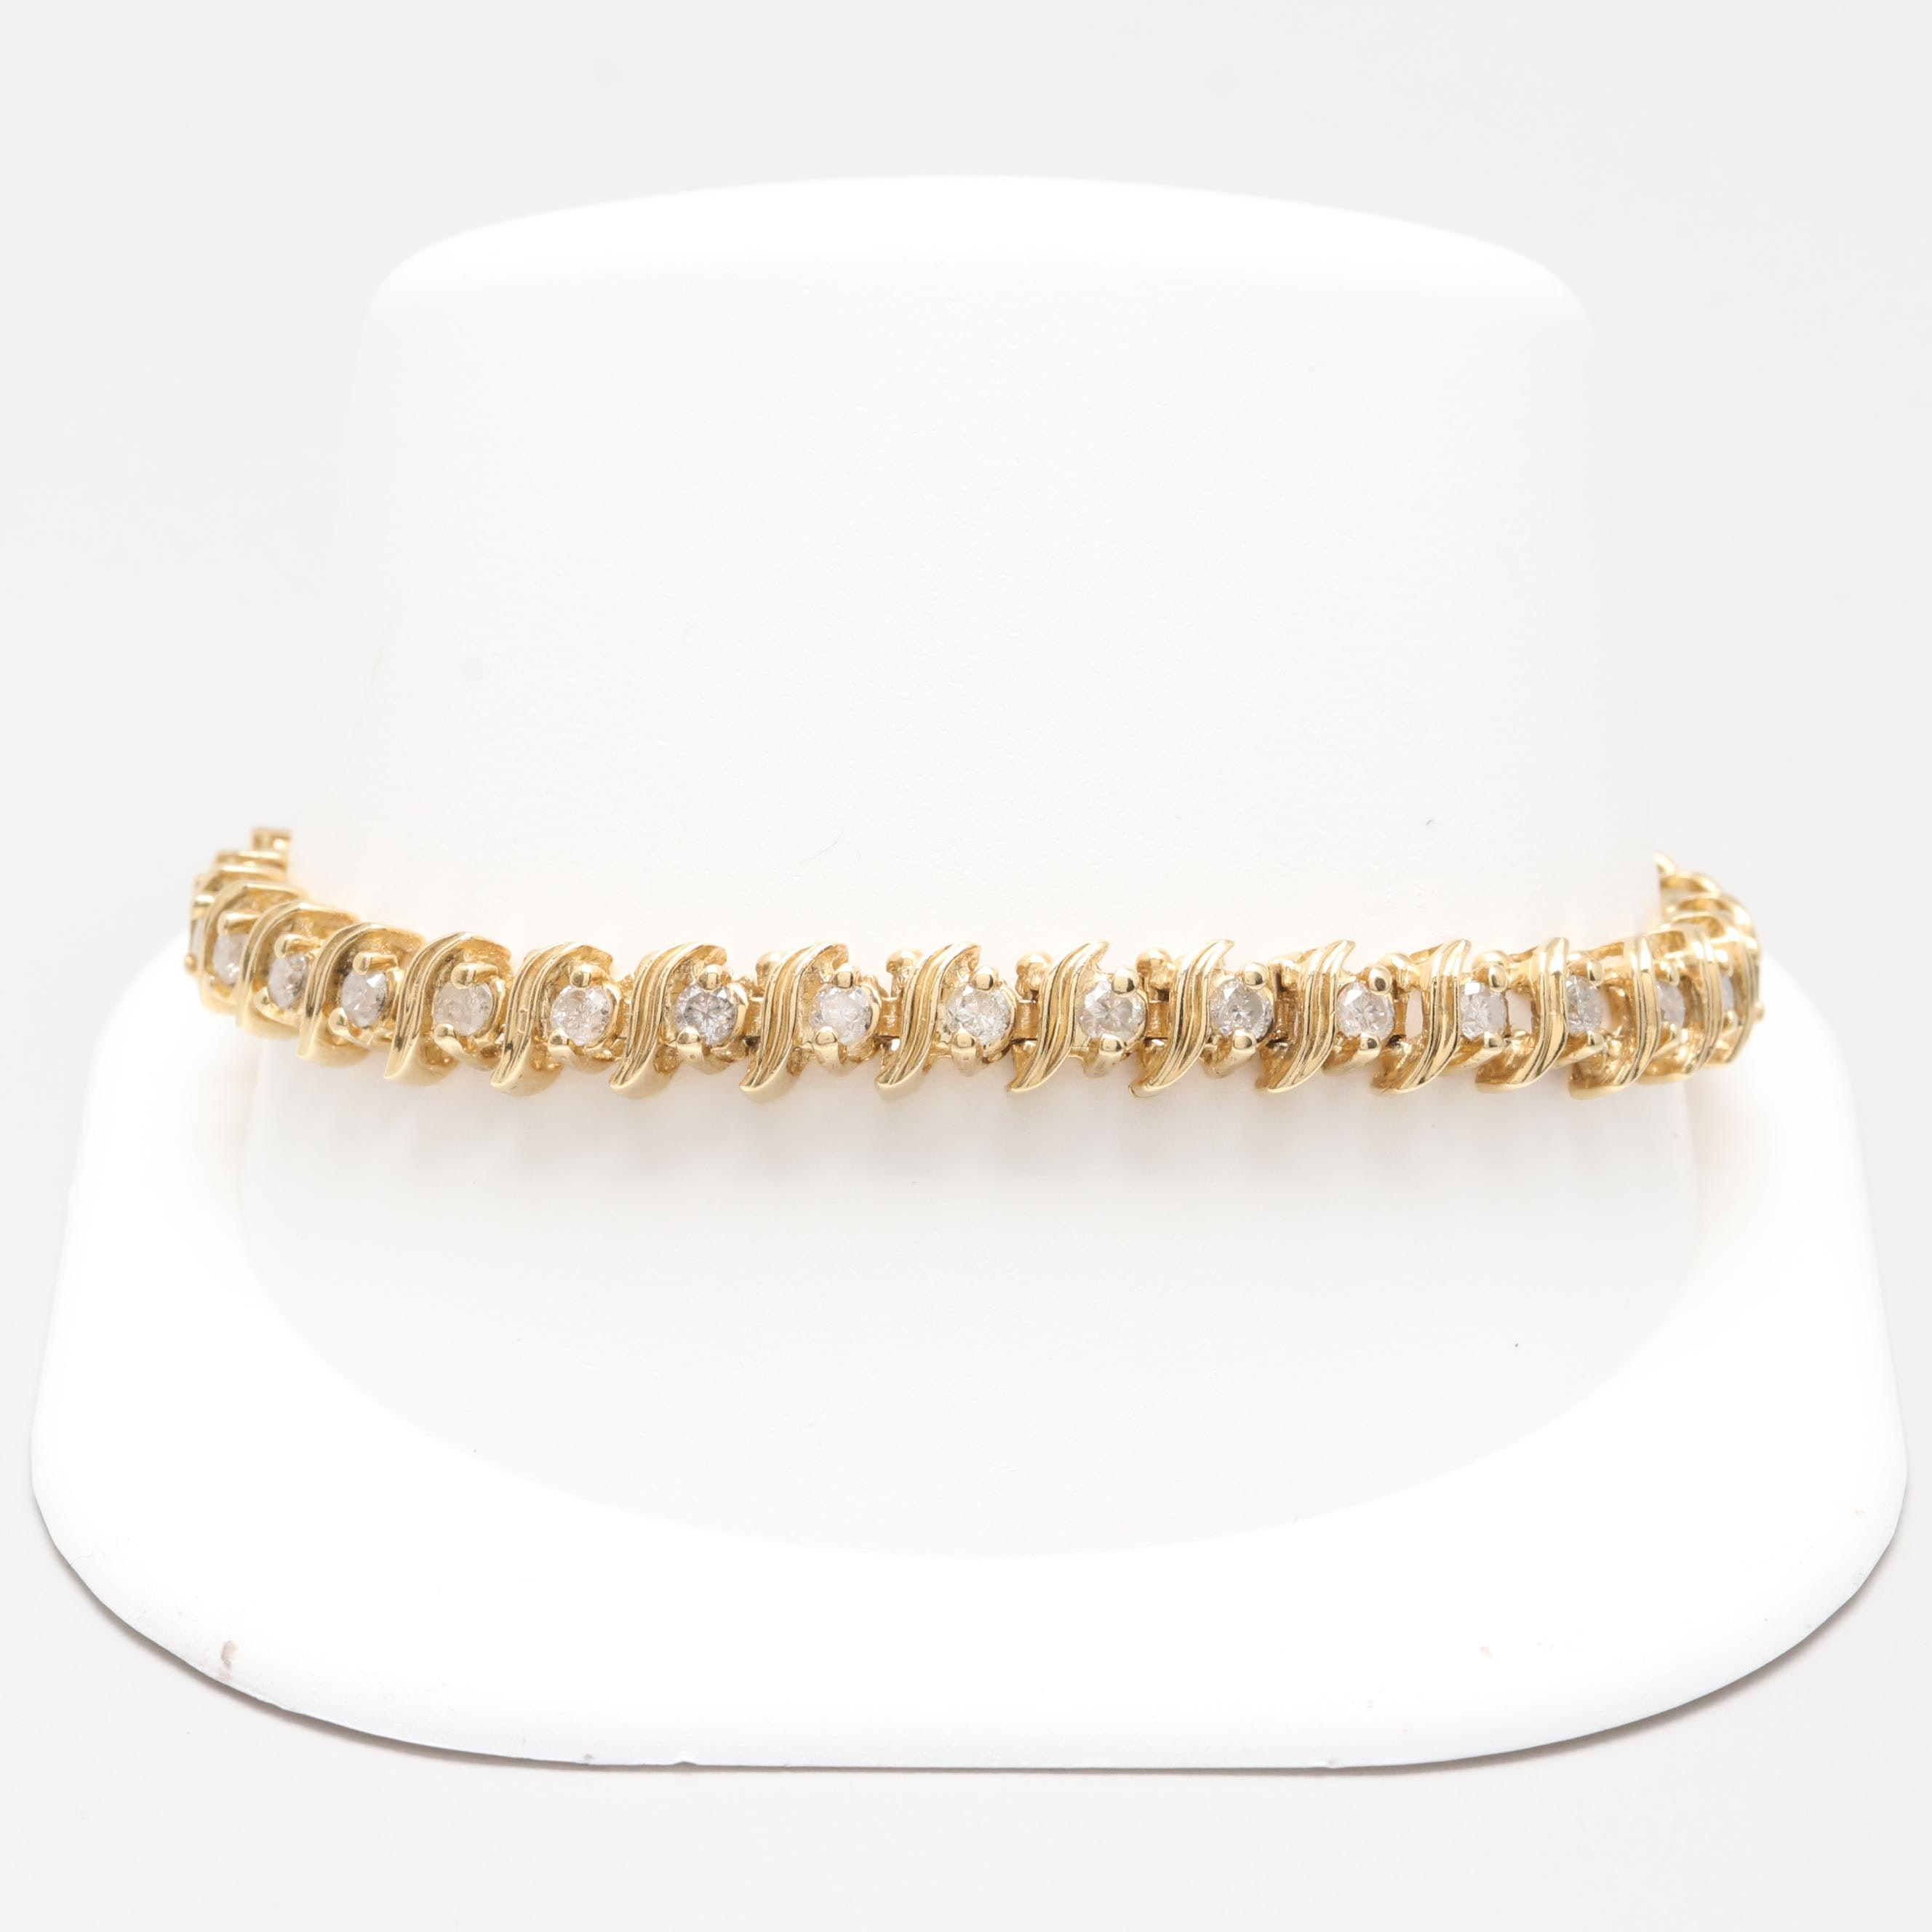 14K Yellow Gold 2.52 CTW Diamond Tennis Bracelet